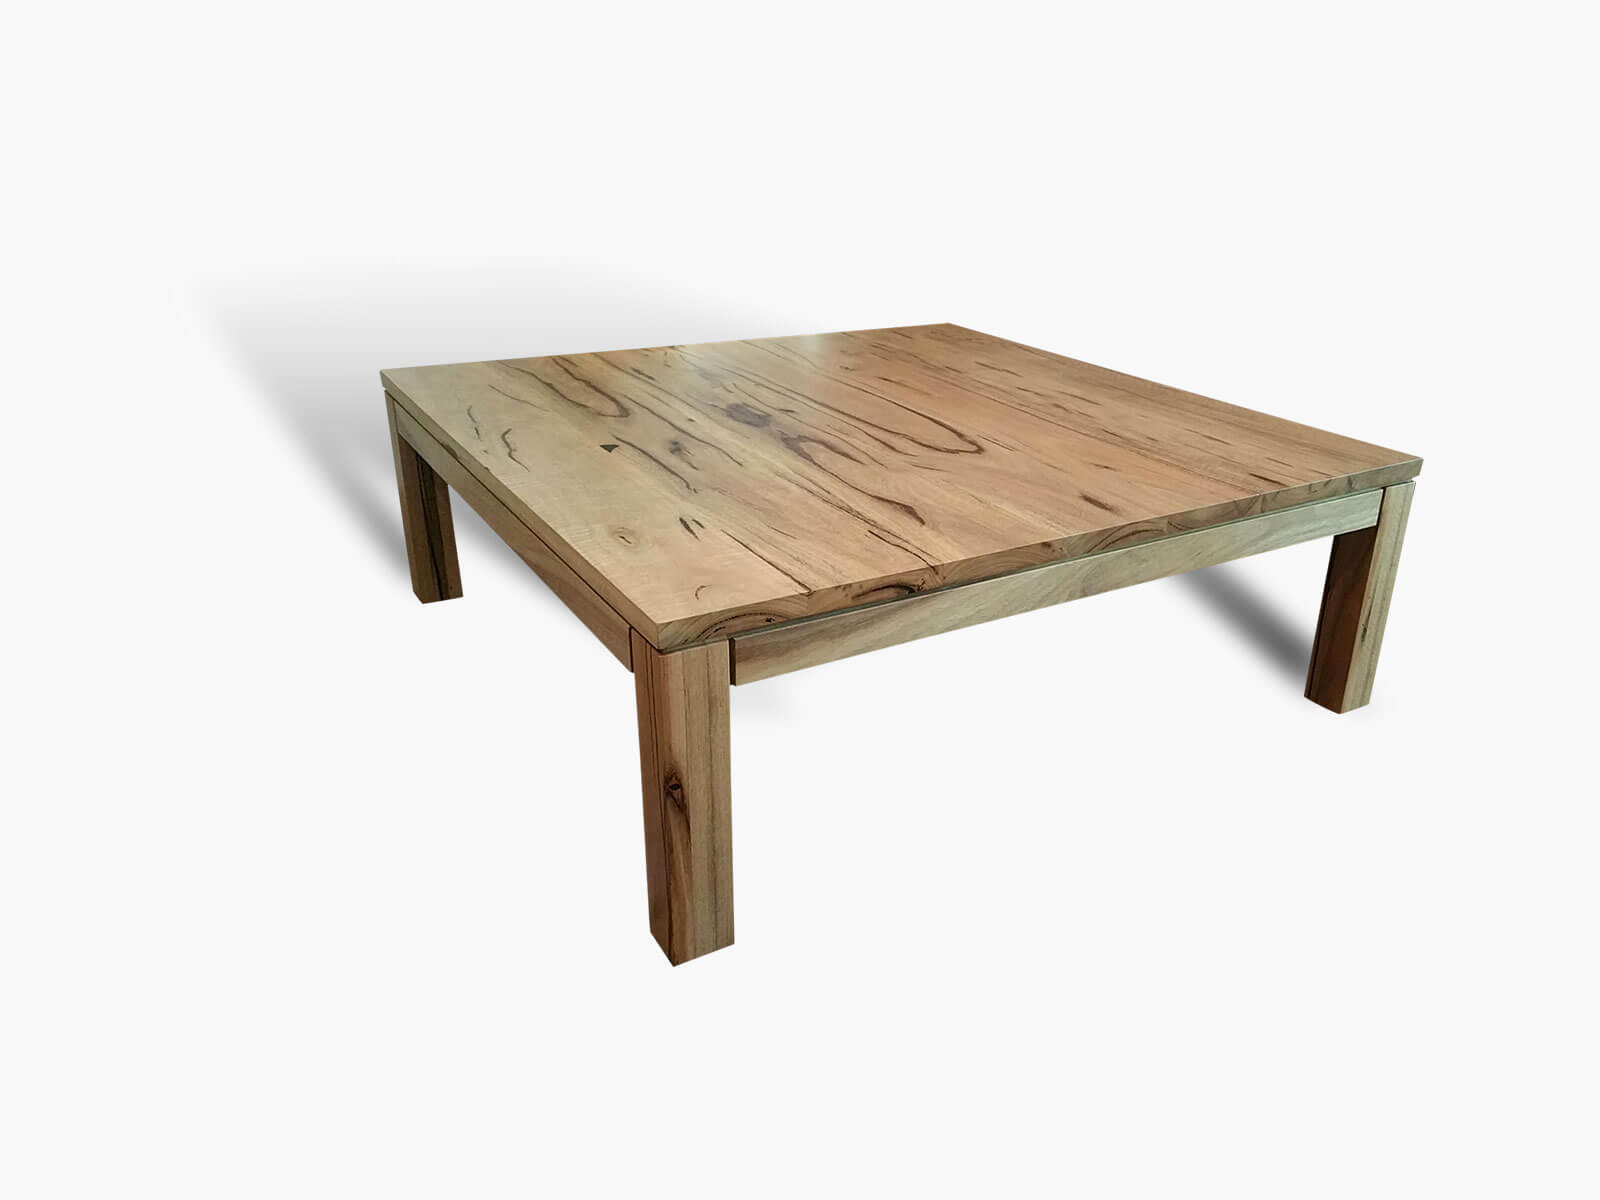 Valdora Marri Coffee Table